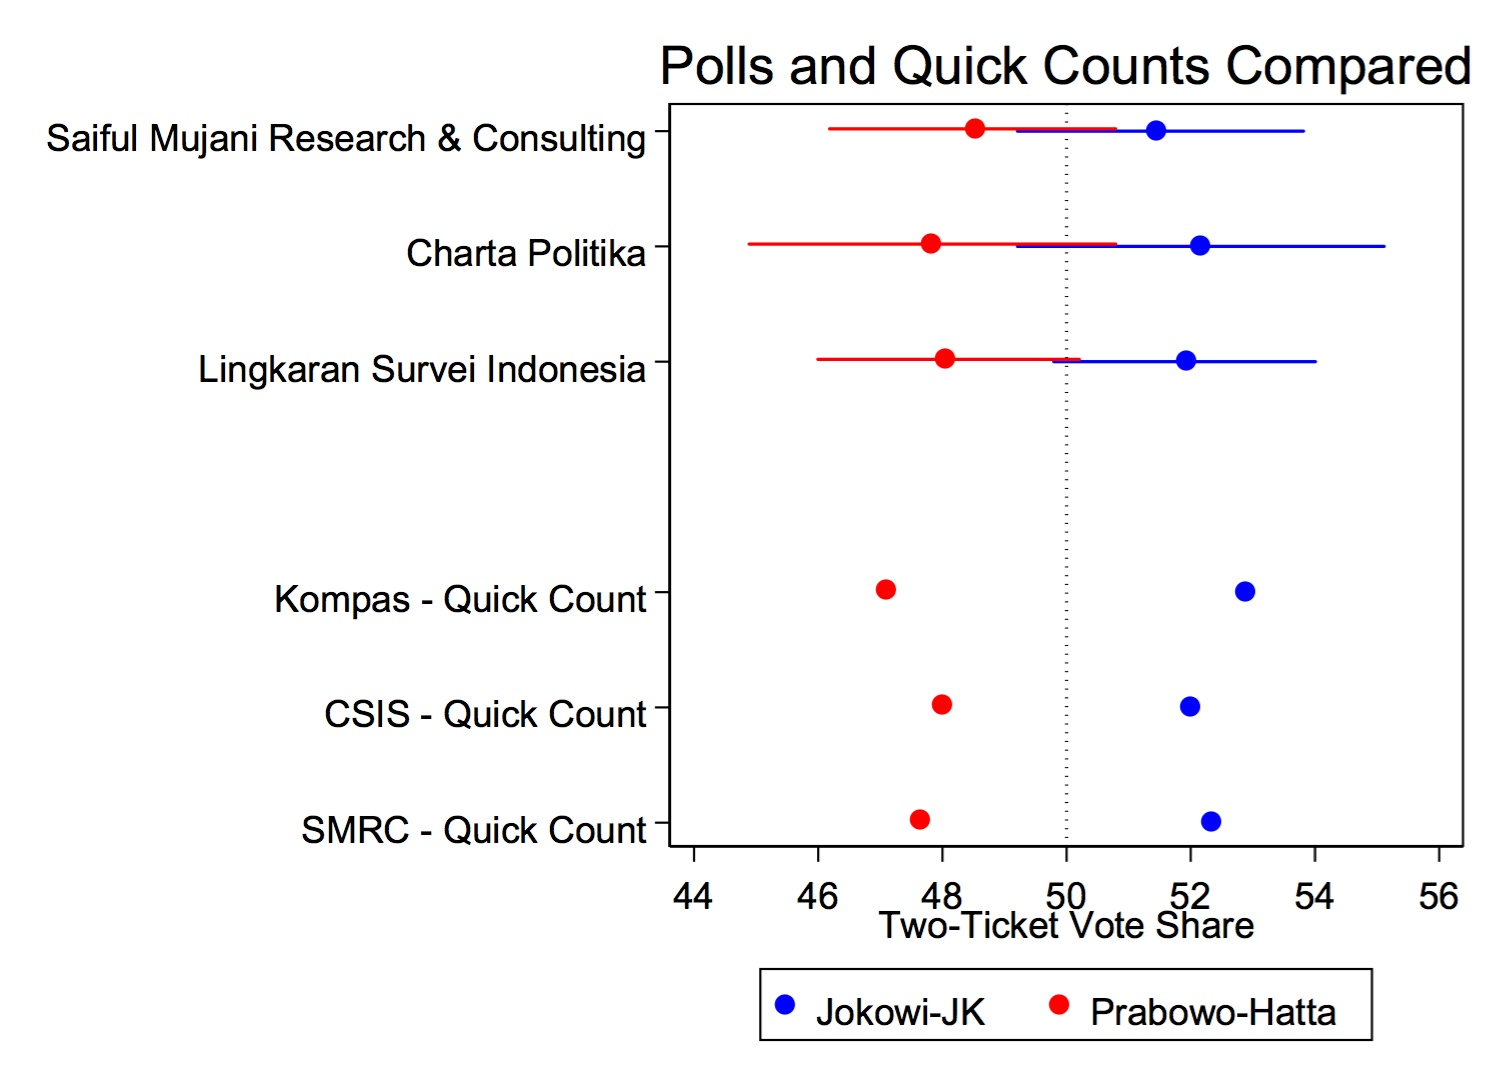 選後初步的quick count結果 https://tompepinsky.files.wordpress.com/2014/07/polls-quickcounts.jpg